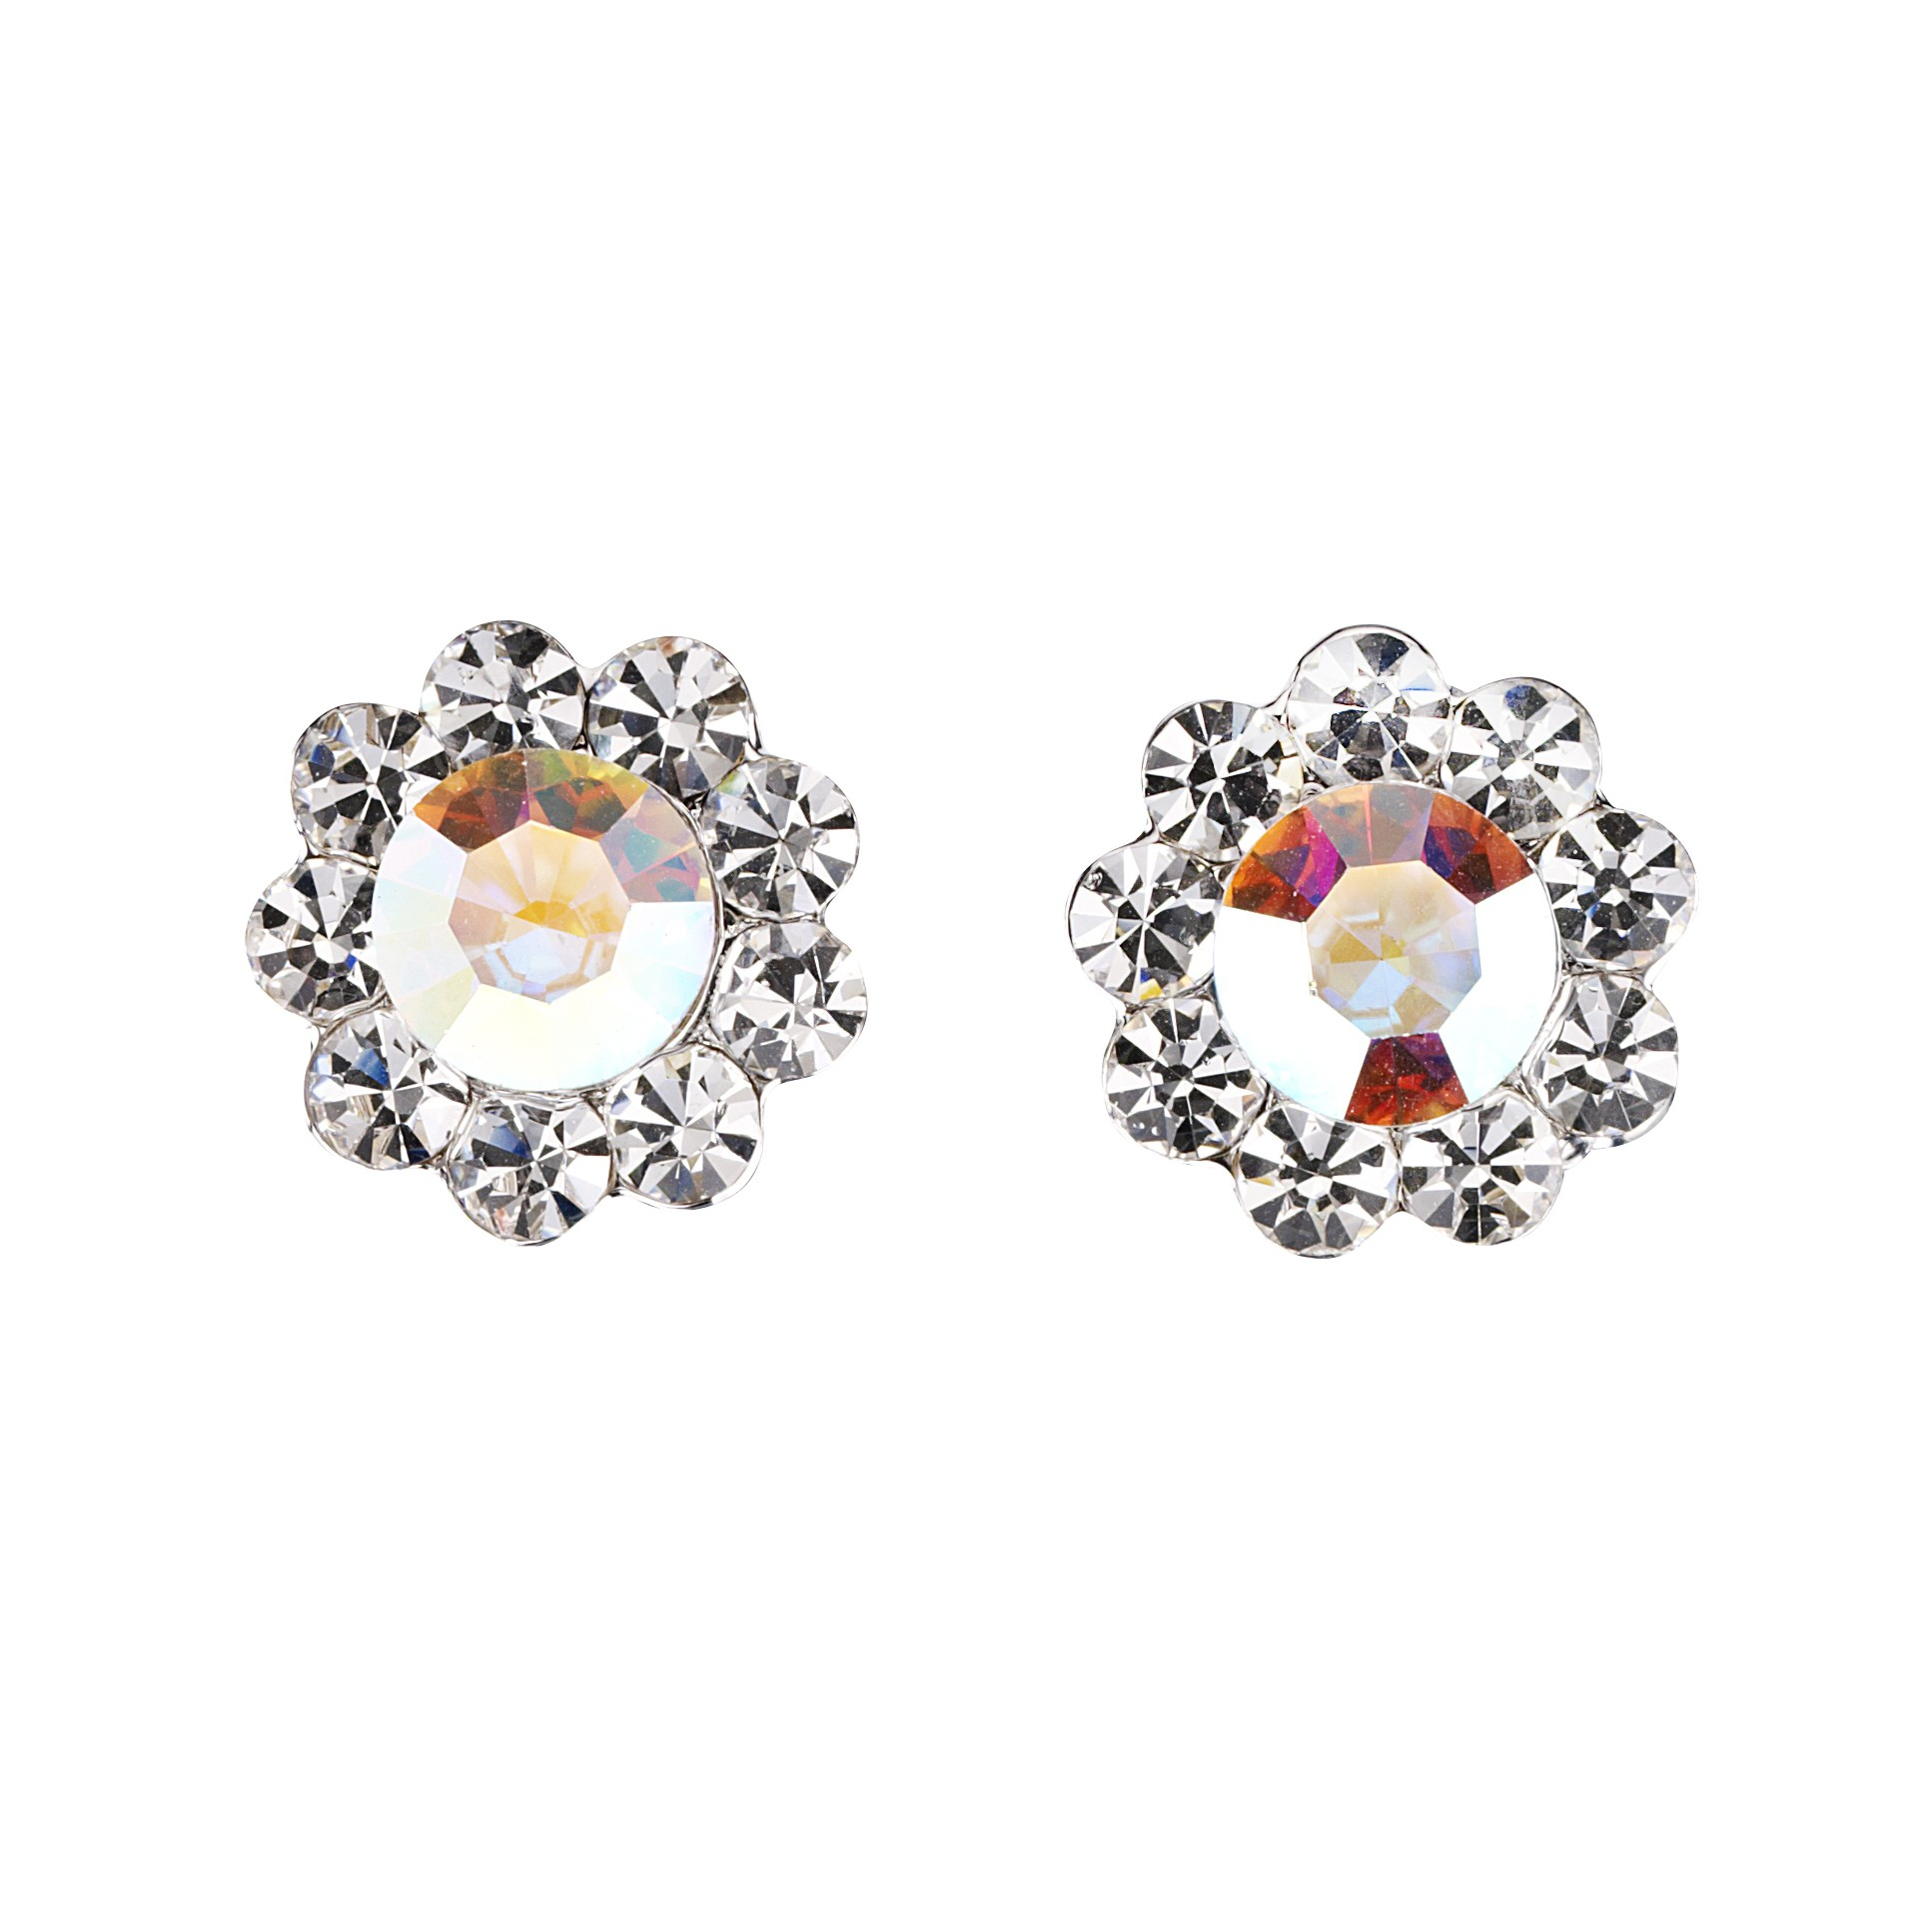 Black Diamond Stud Earrings Uk